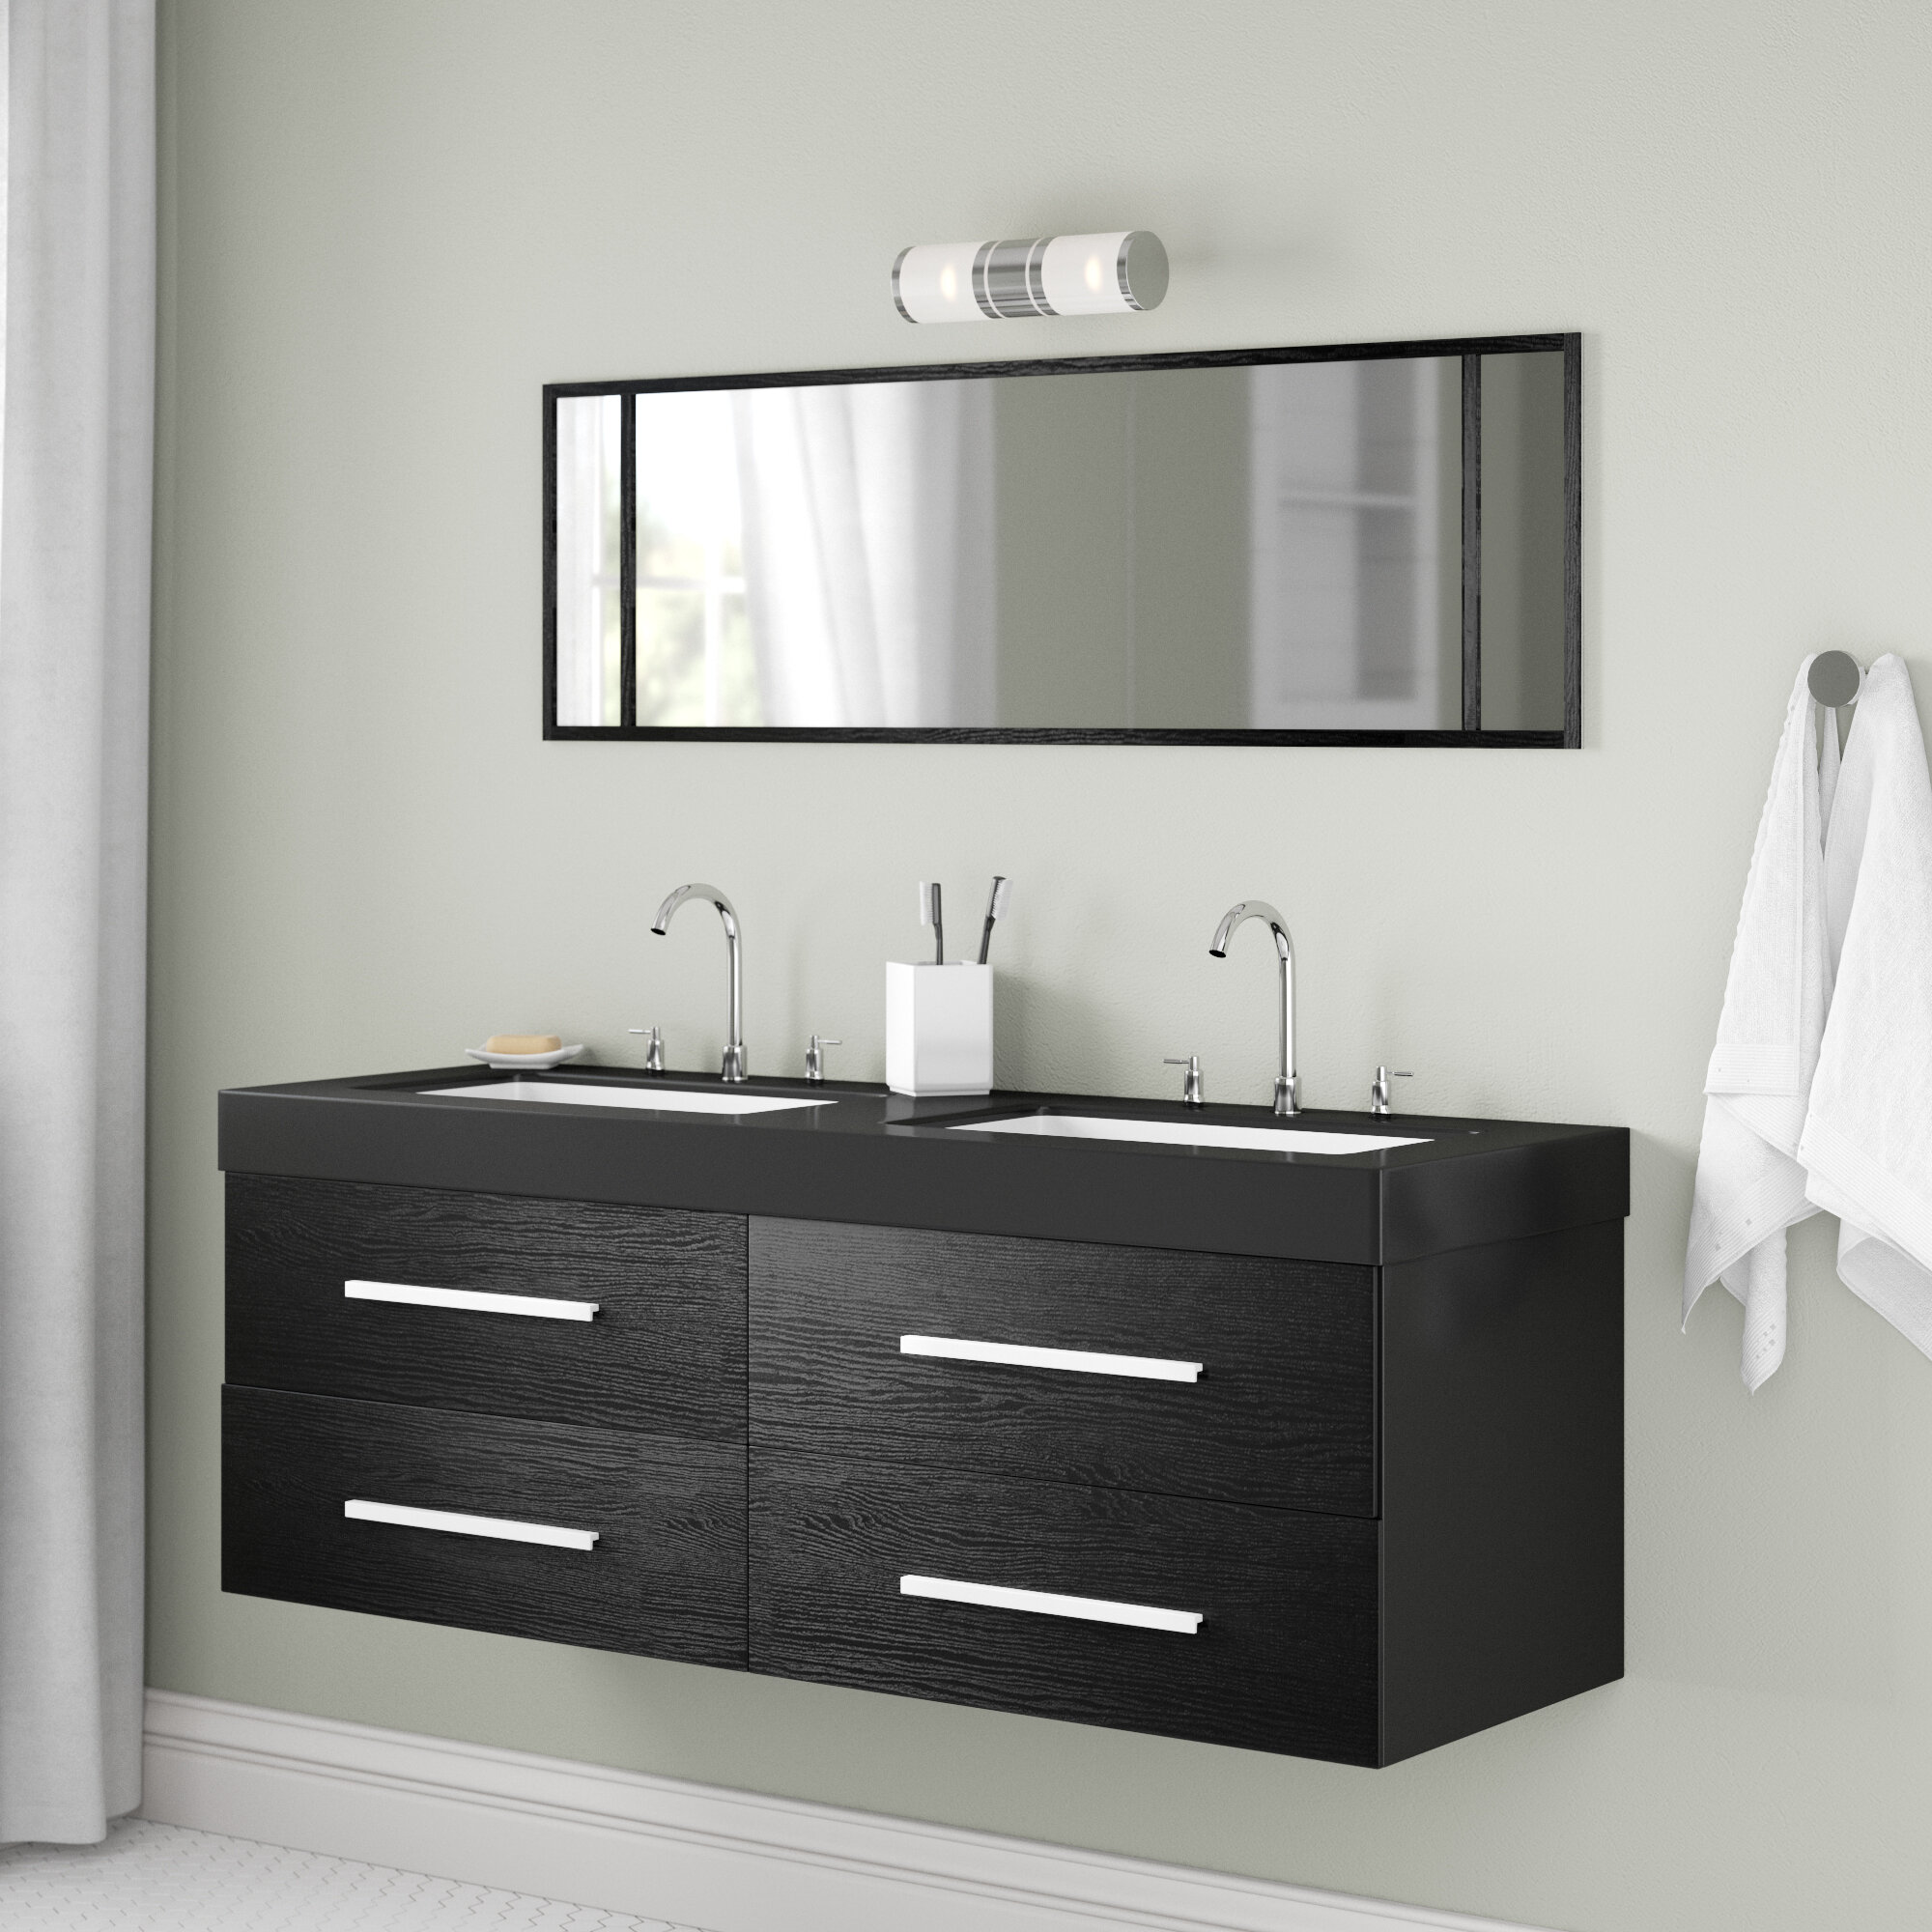 on sale edc4f b881d 140cm Wall Mounted Double Sink Vanity Unit